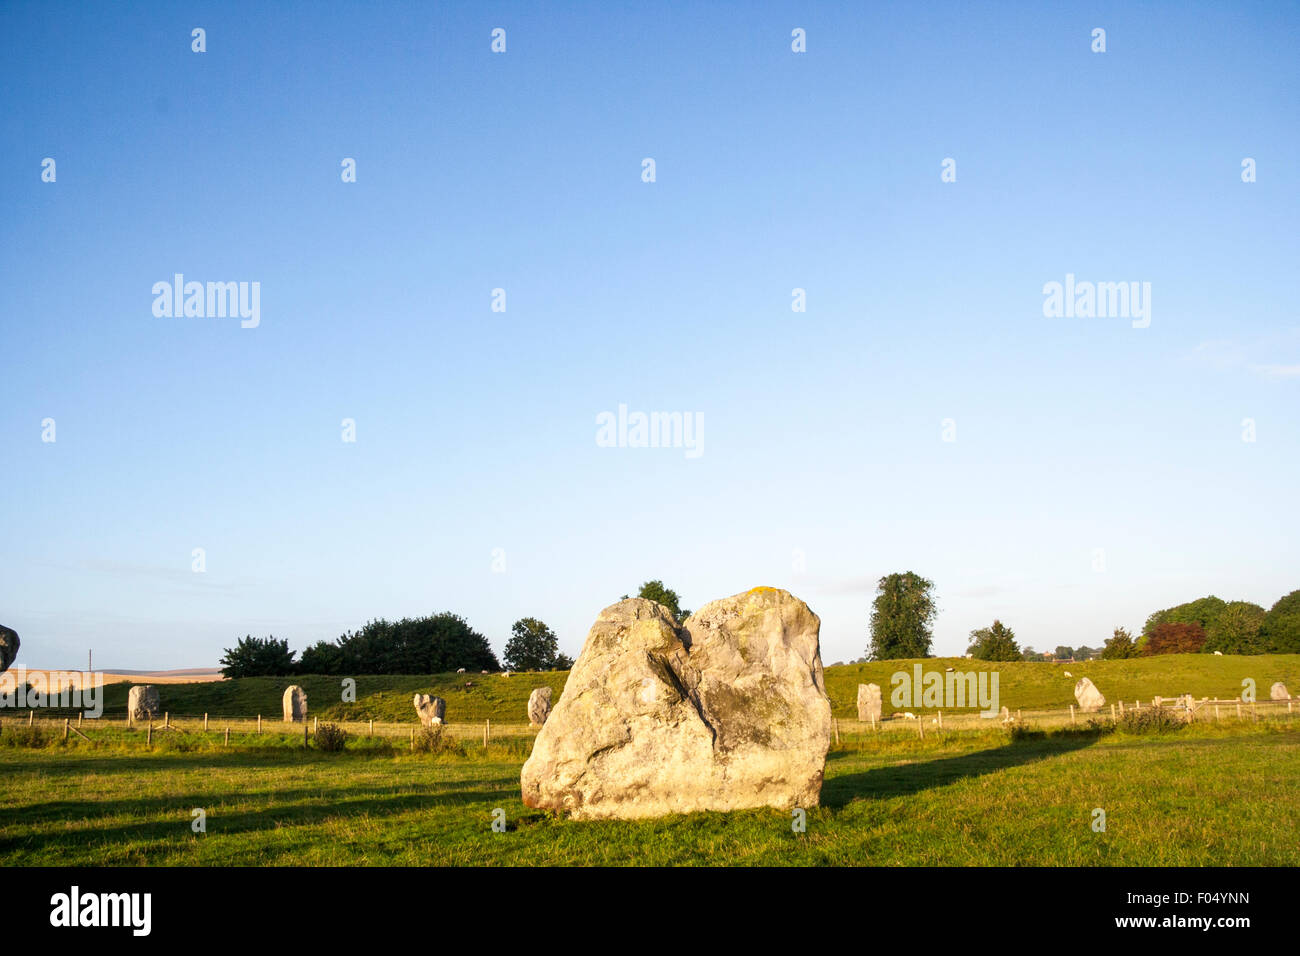 Avebury stone circle, Southern inner circle, long view of massive standing stone with large expense of blue sky - Stock Image